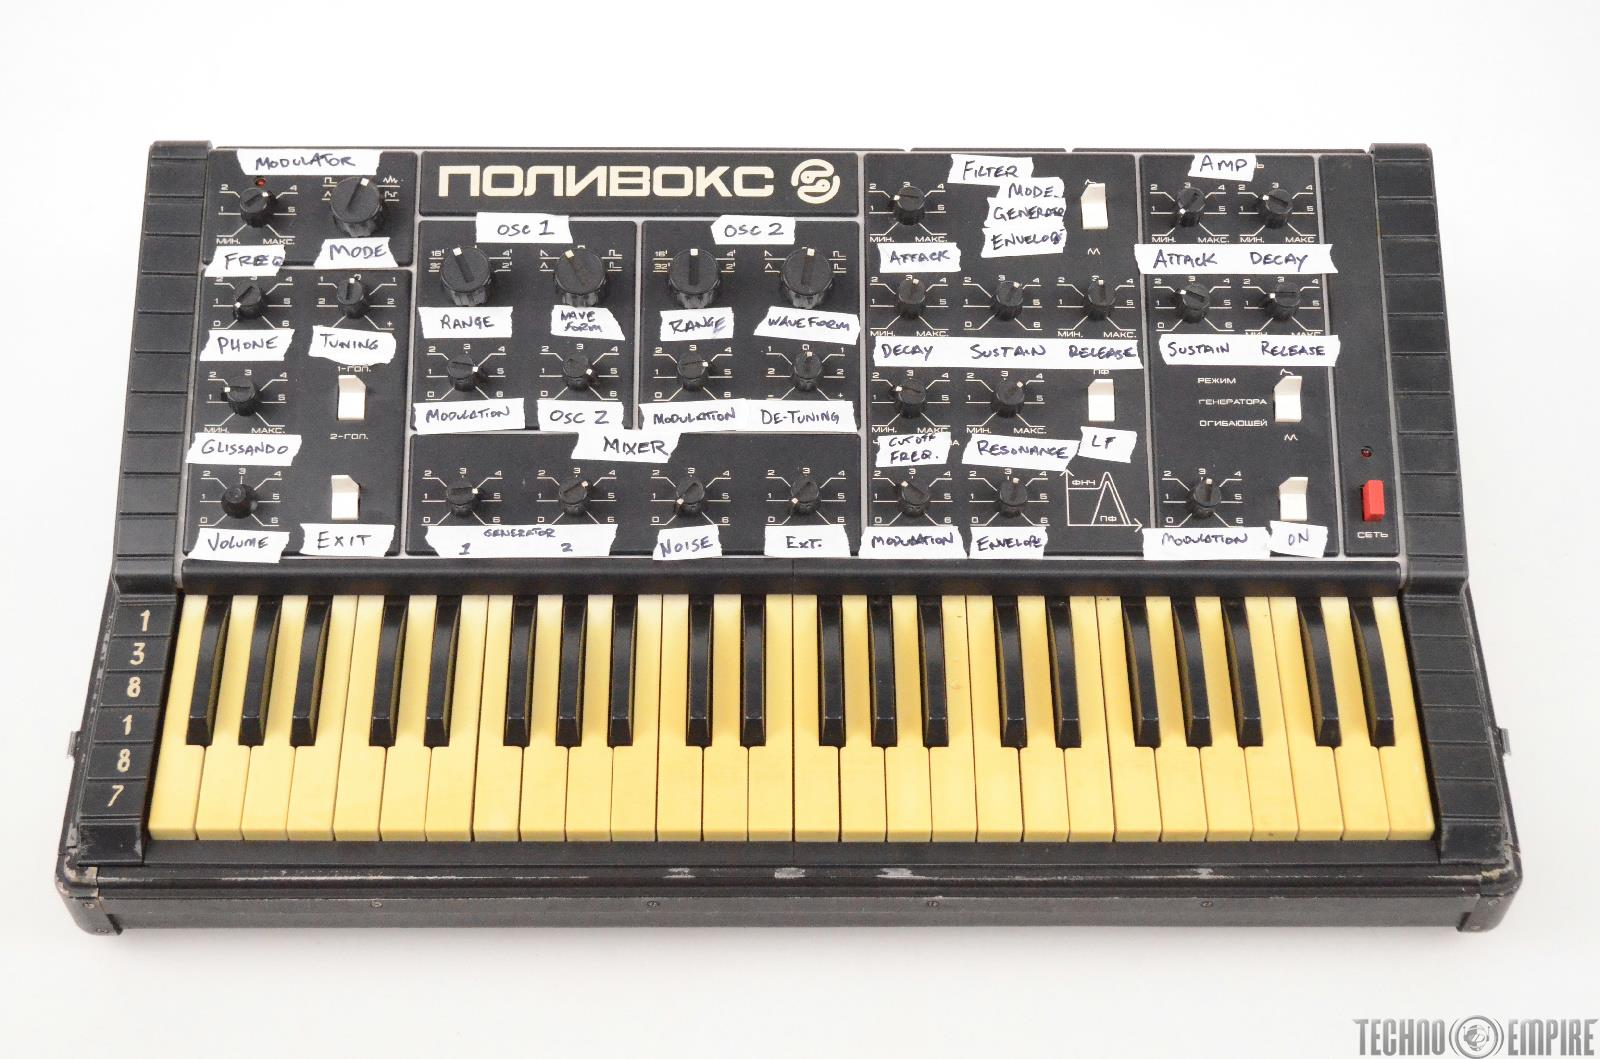 Formanta Polivoks Polivox Duophonic Analog Synthesizer w/ Case USSR Synth #31063